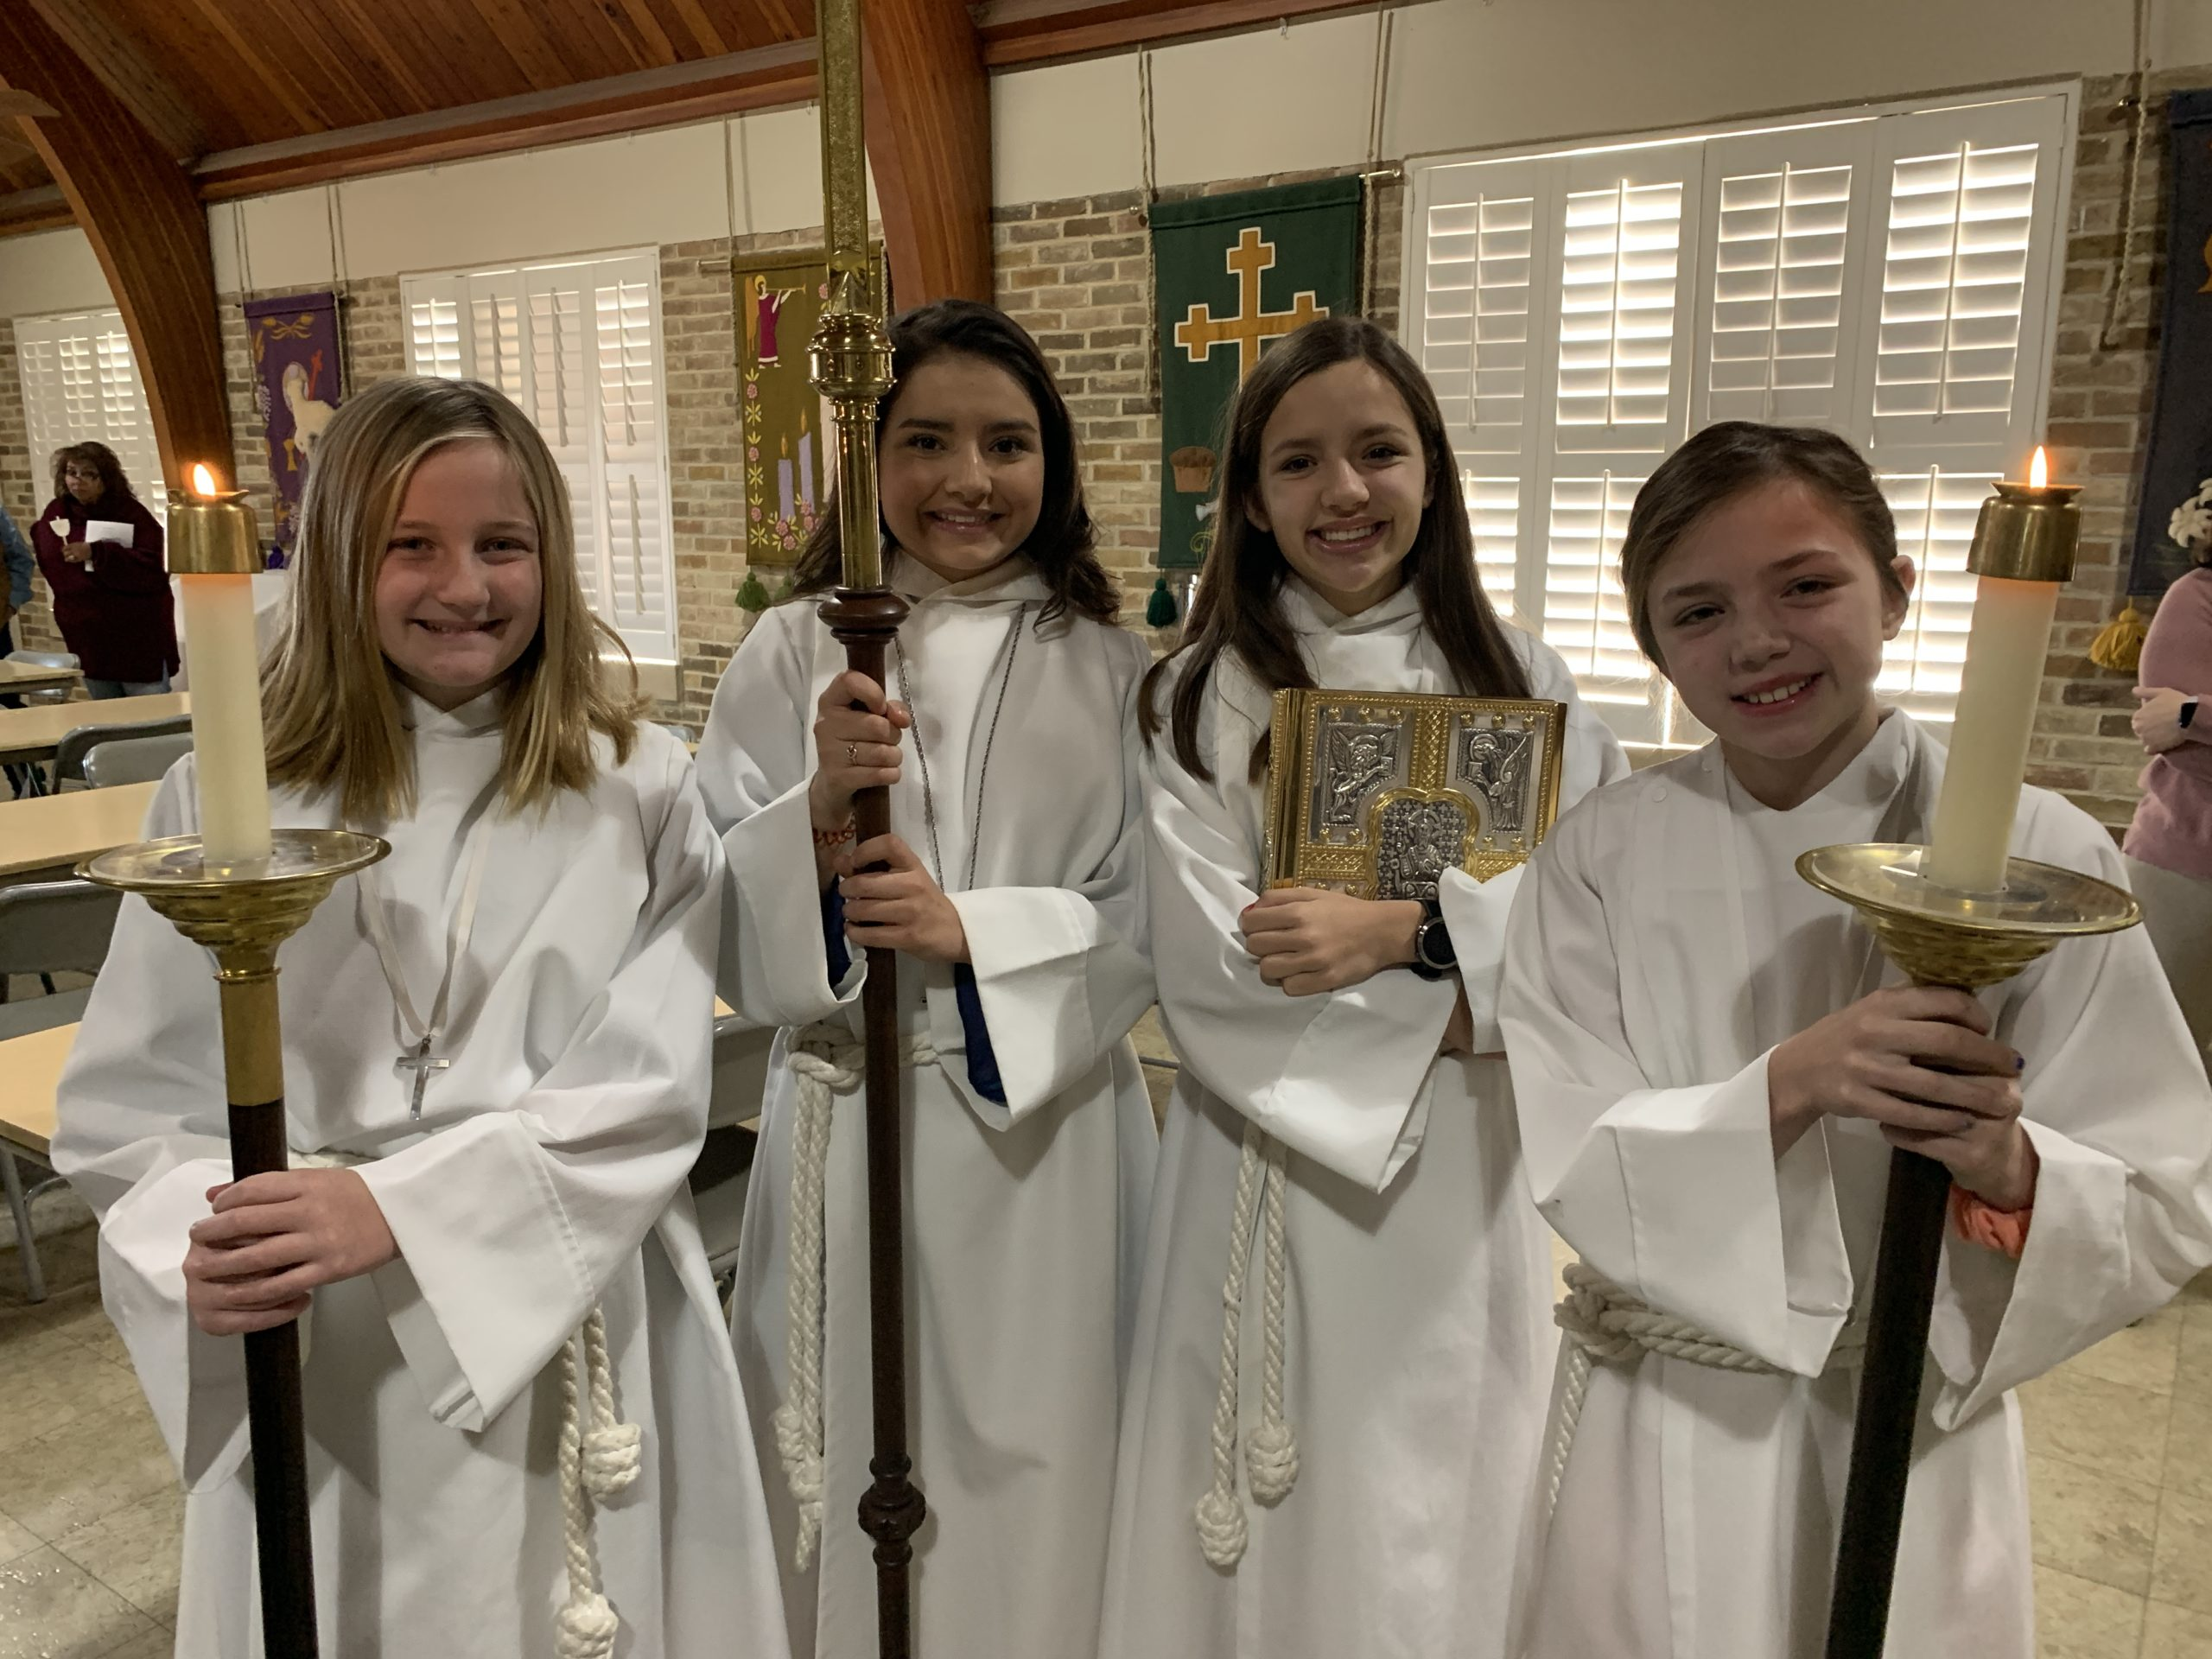 All Girl Acolytes